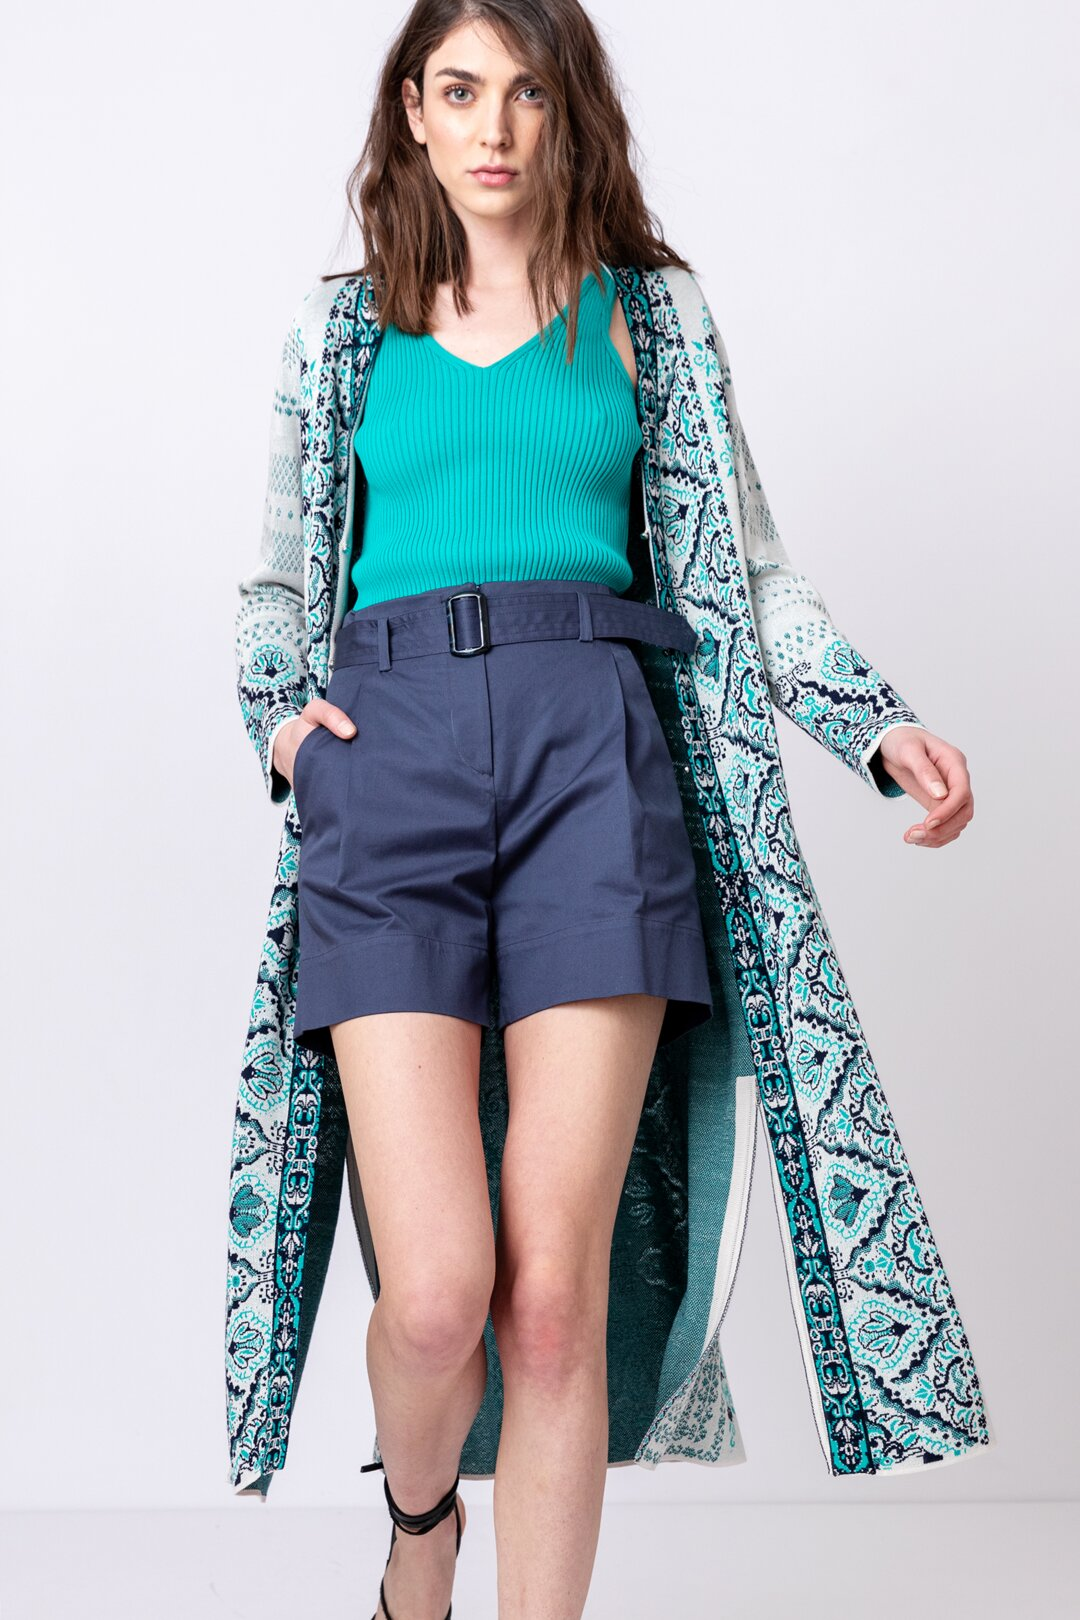 outfit-7c8a0719